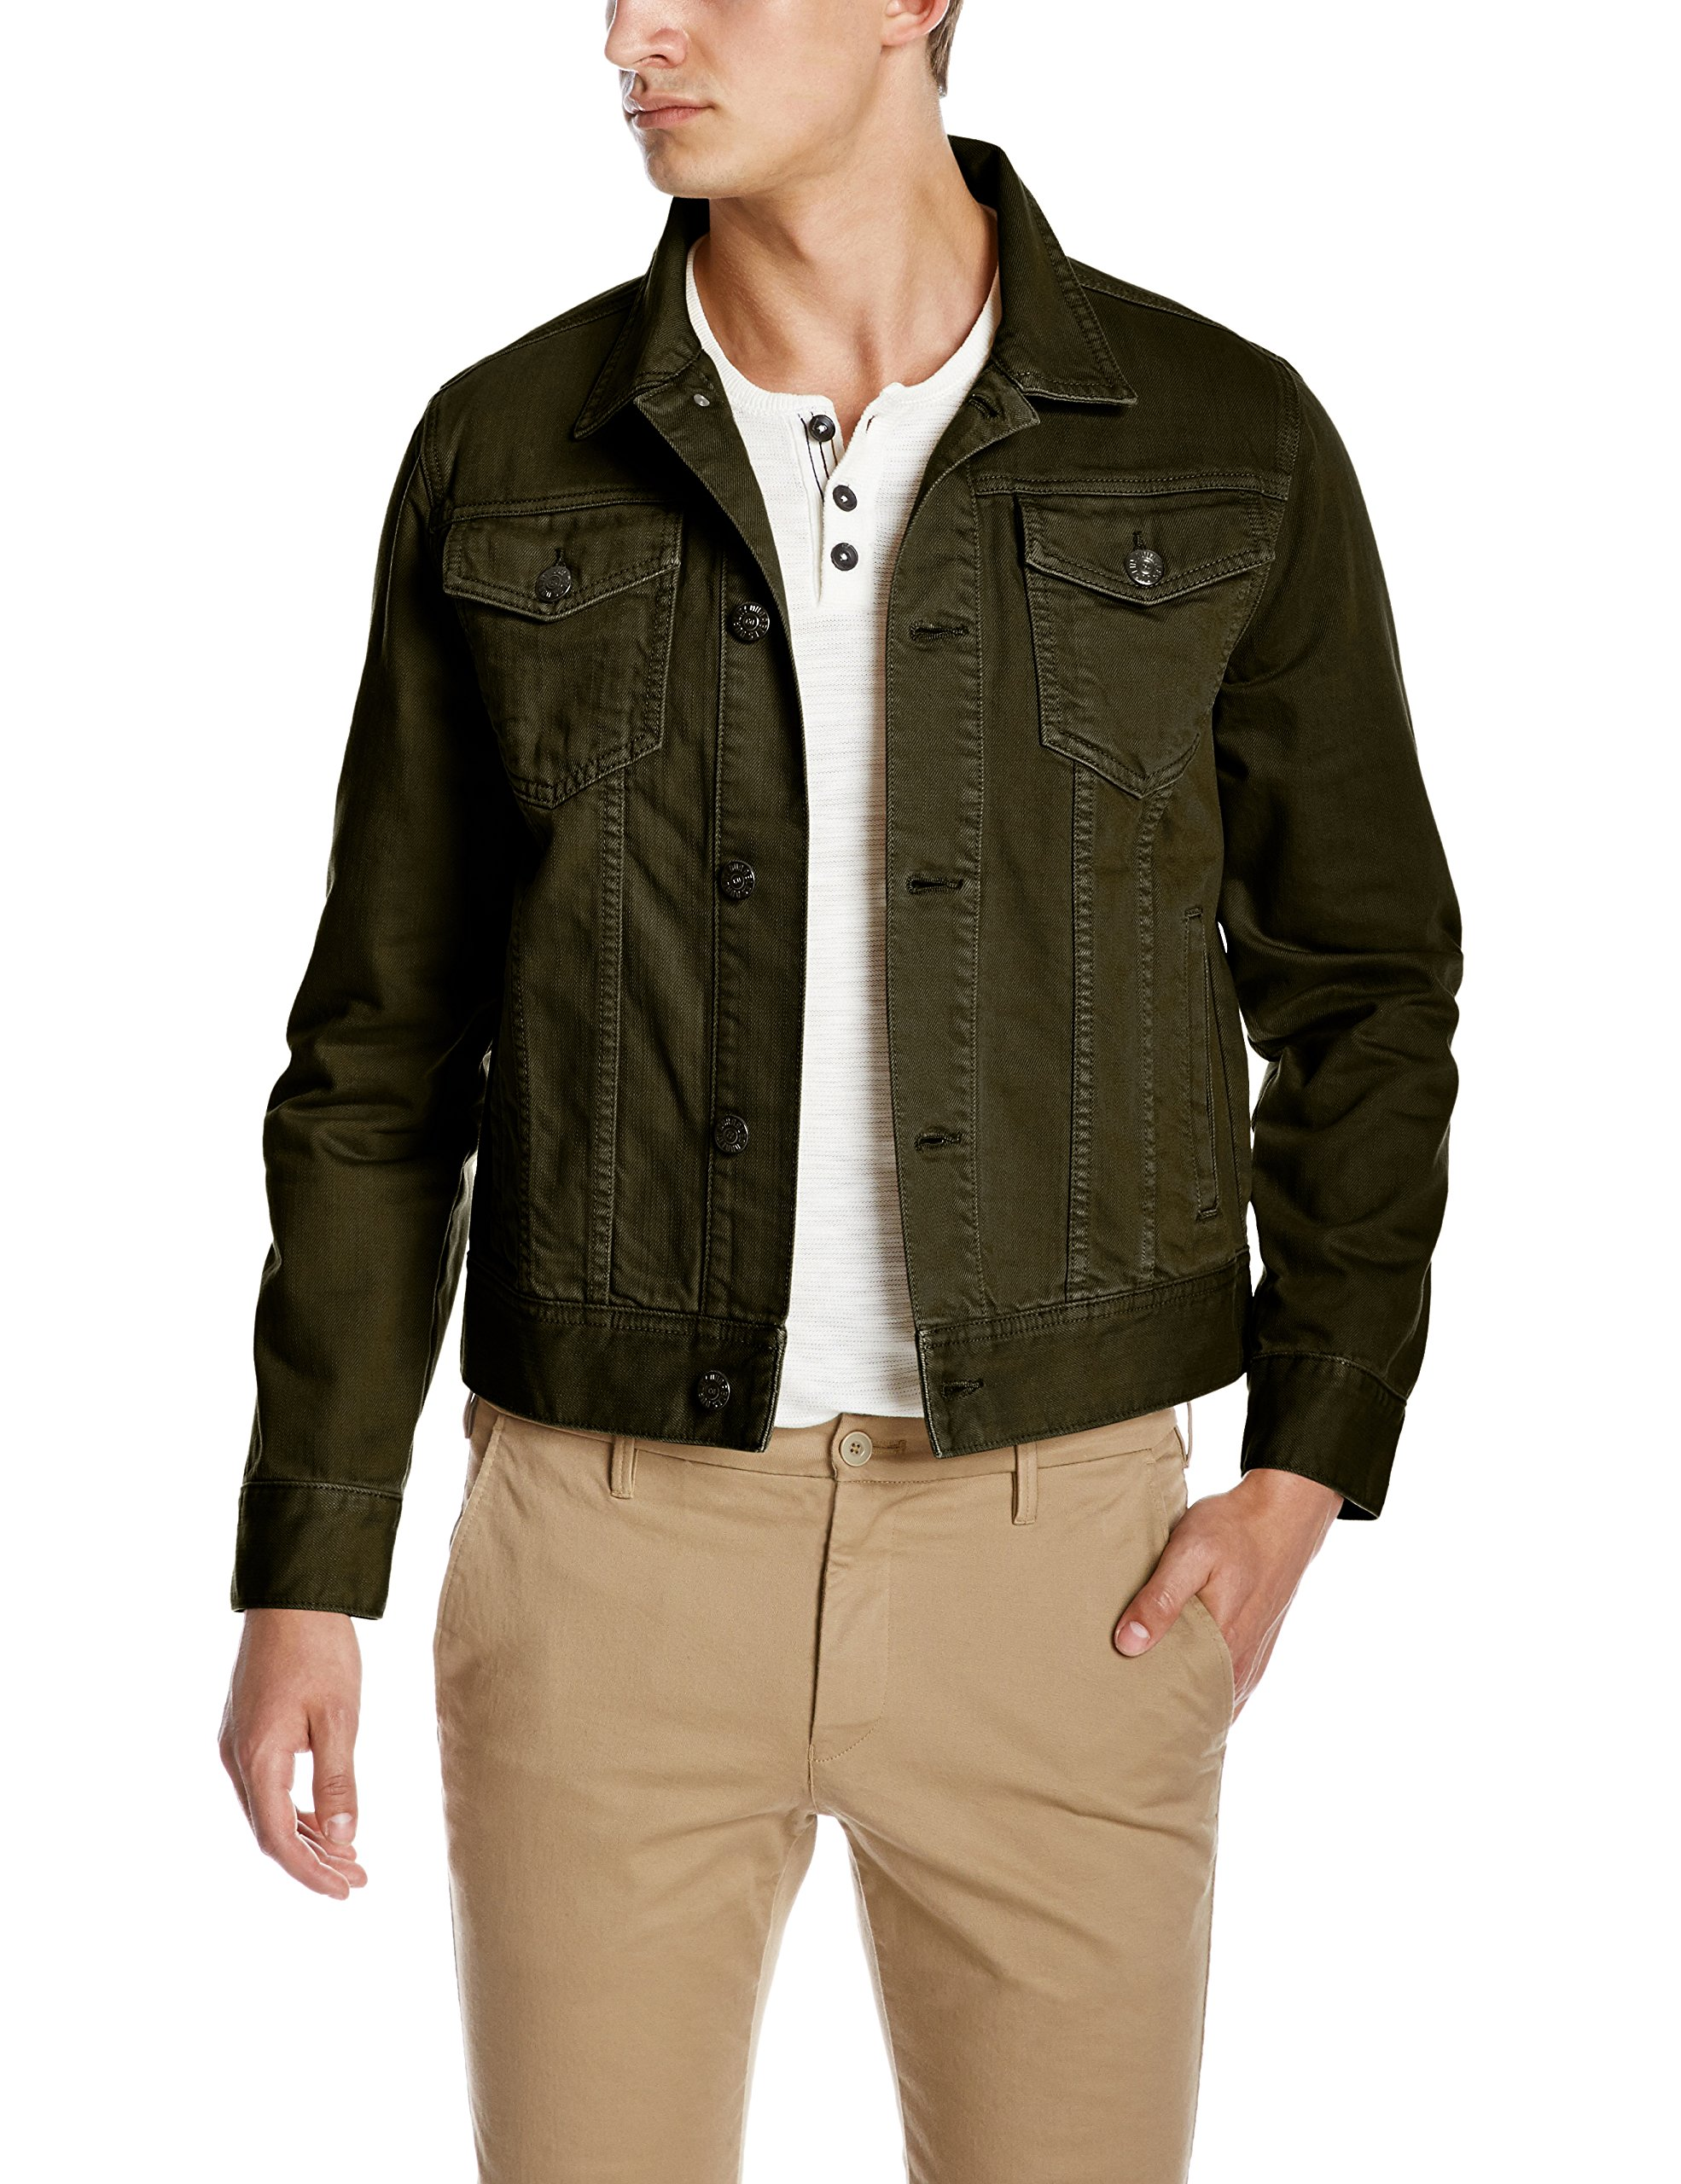 Quality Durables Co. Men's Regular Fit Jean Jacket 2XL Olive by Quality Durables Co.